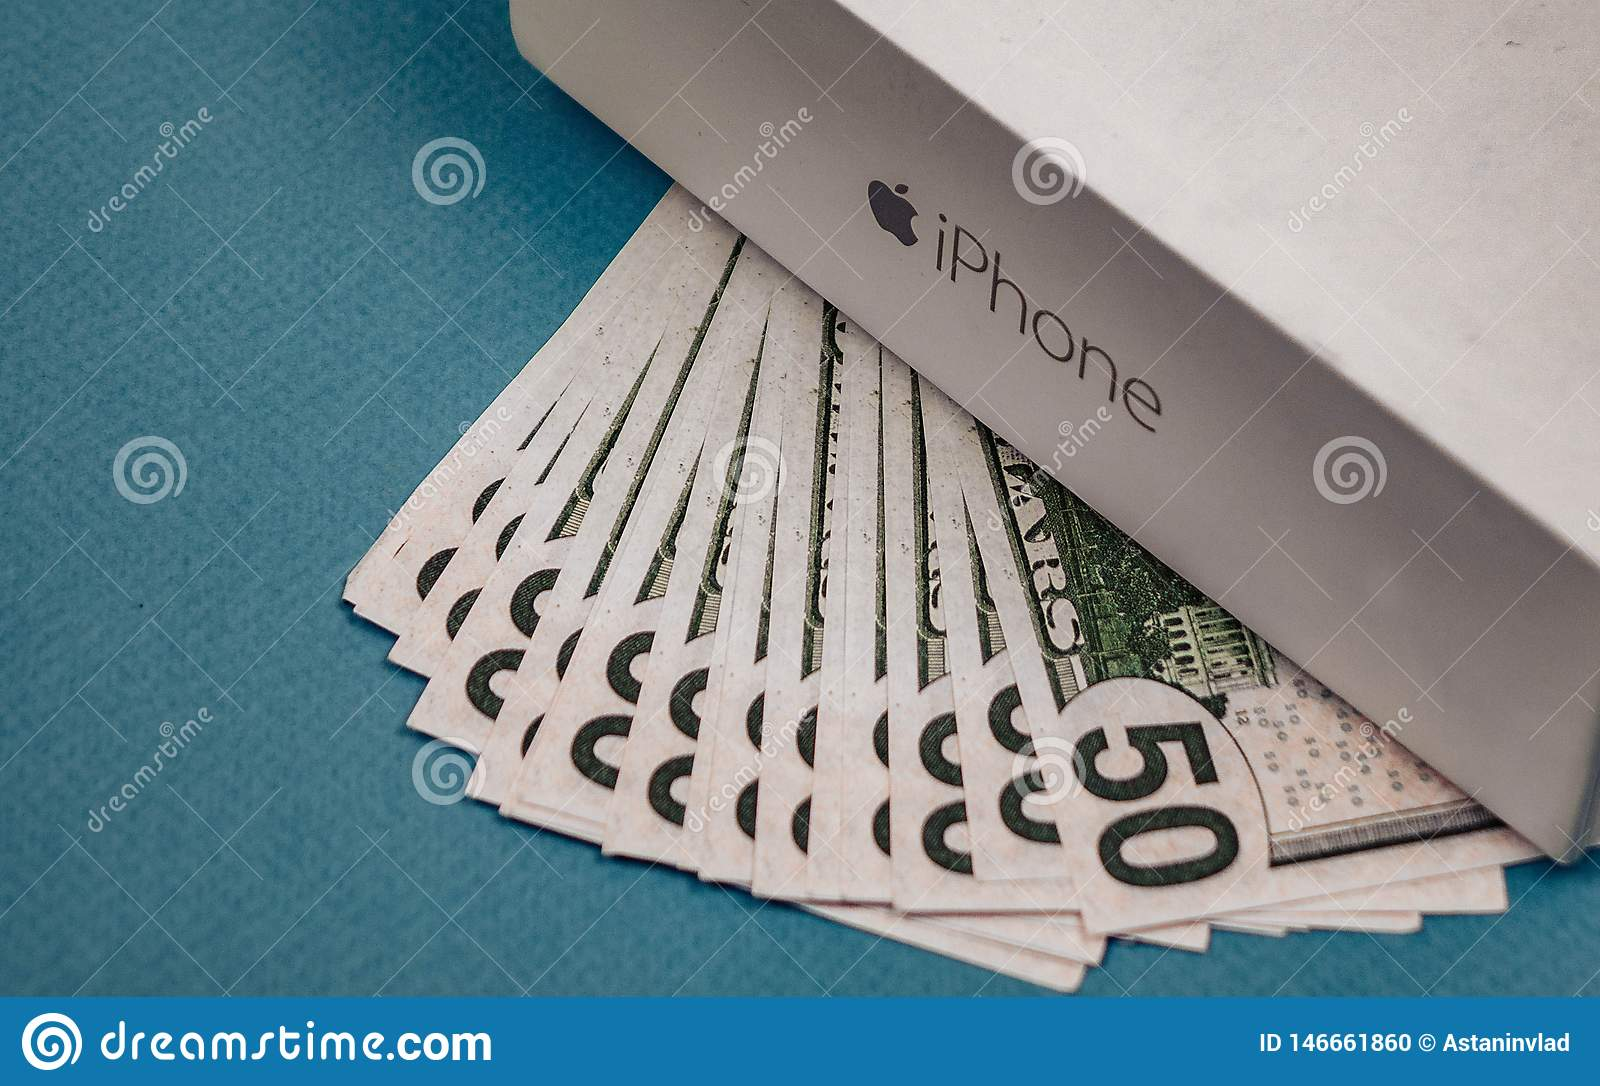 Voronezh Russia - may 3, 2019. Apple Inc. logo and fifty dollar bills on the blue background